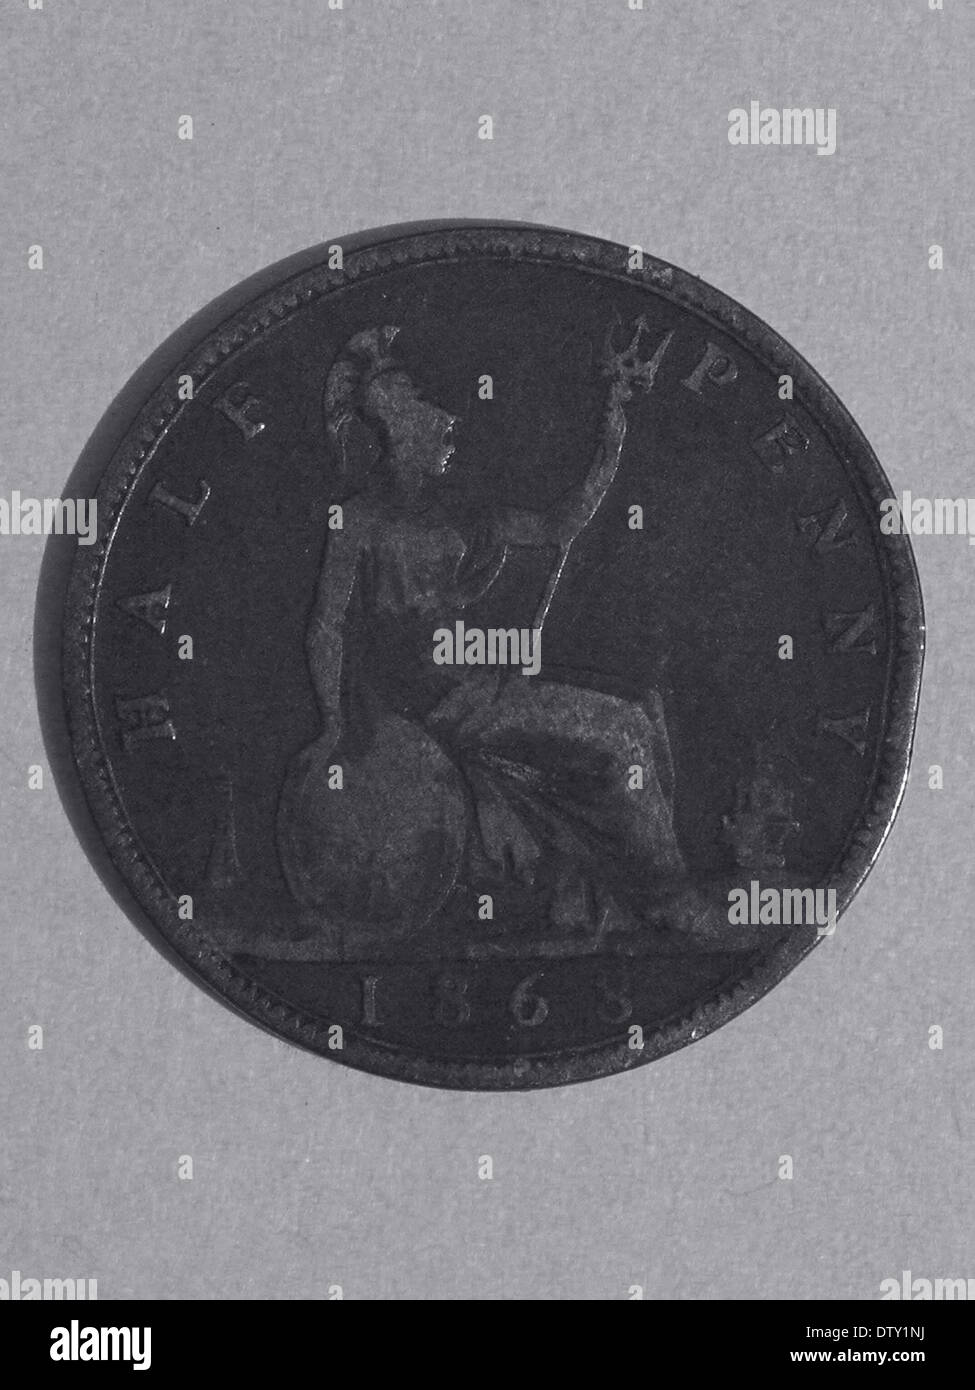 Demi-penny Australien 1868 Photo Stock